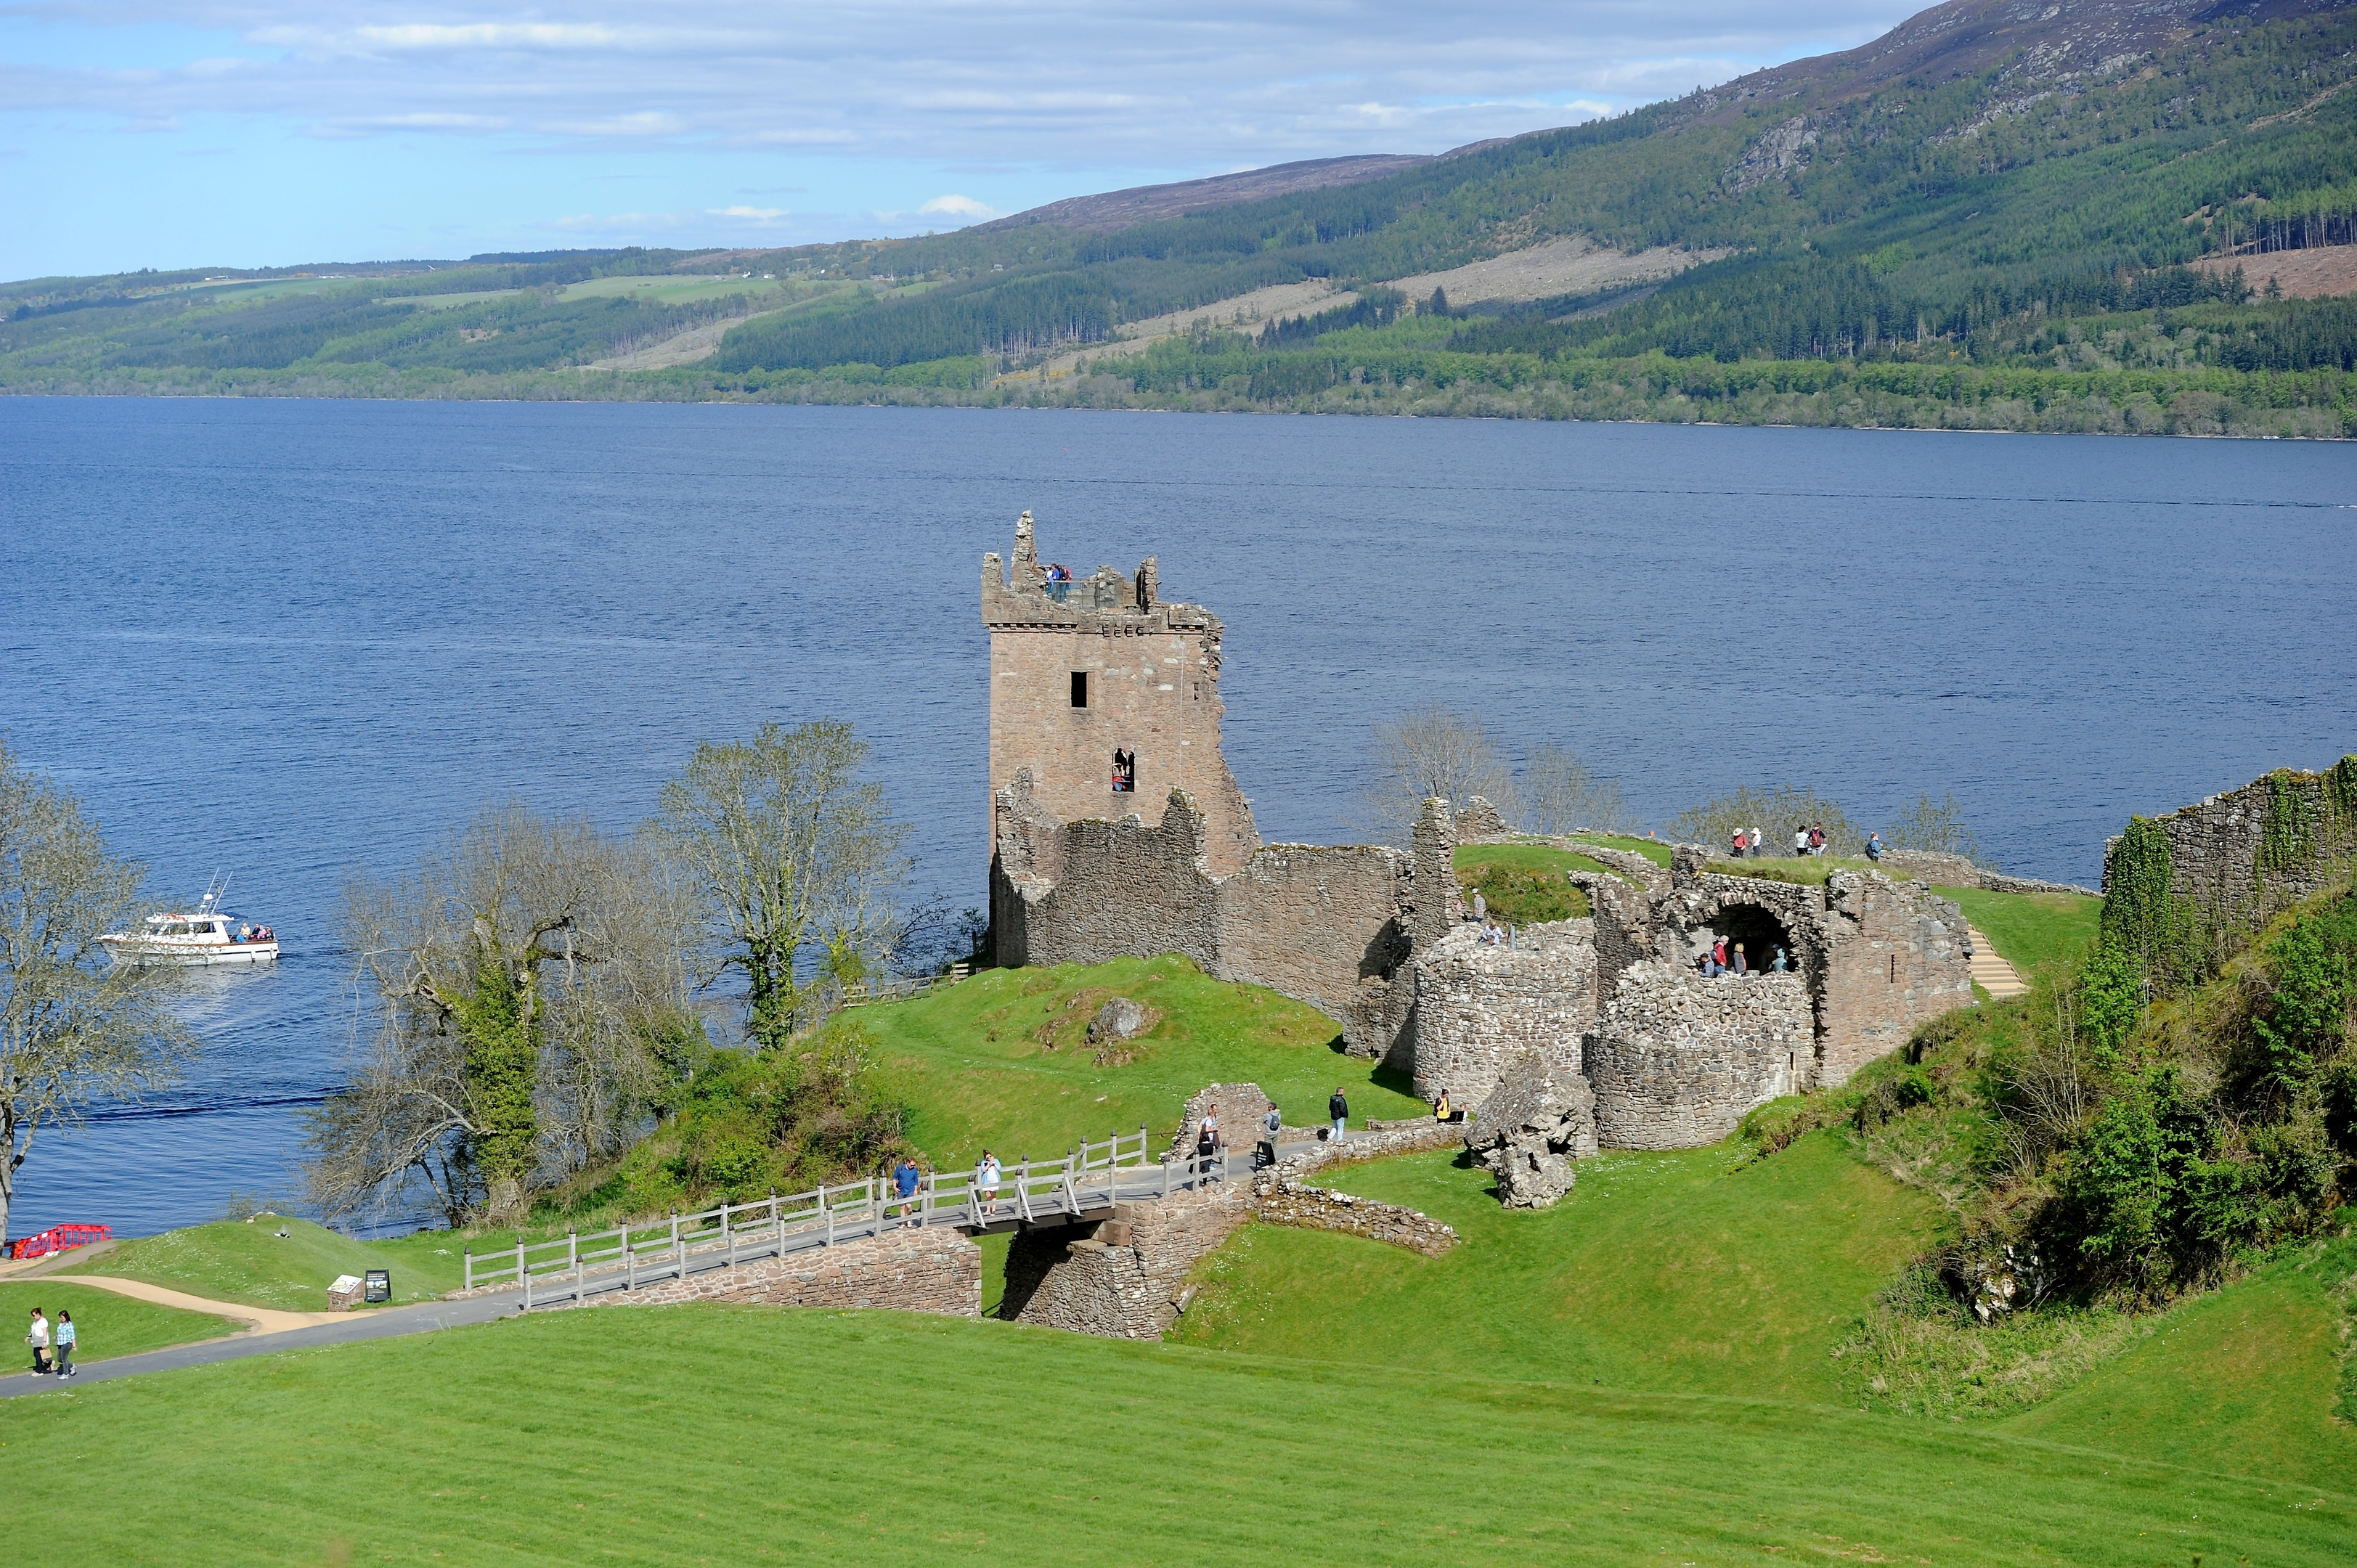 Urquhart Castle on the shore of Loch Ness. Picture by Sandy McCook